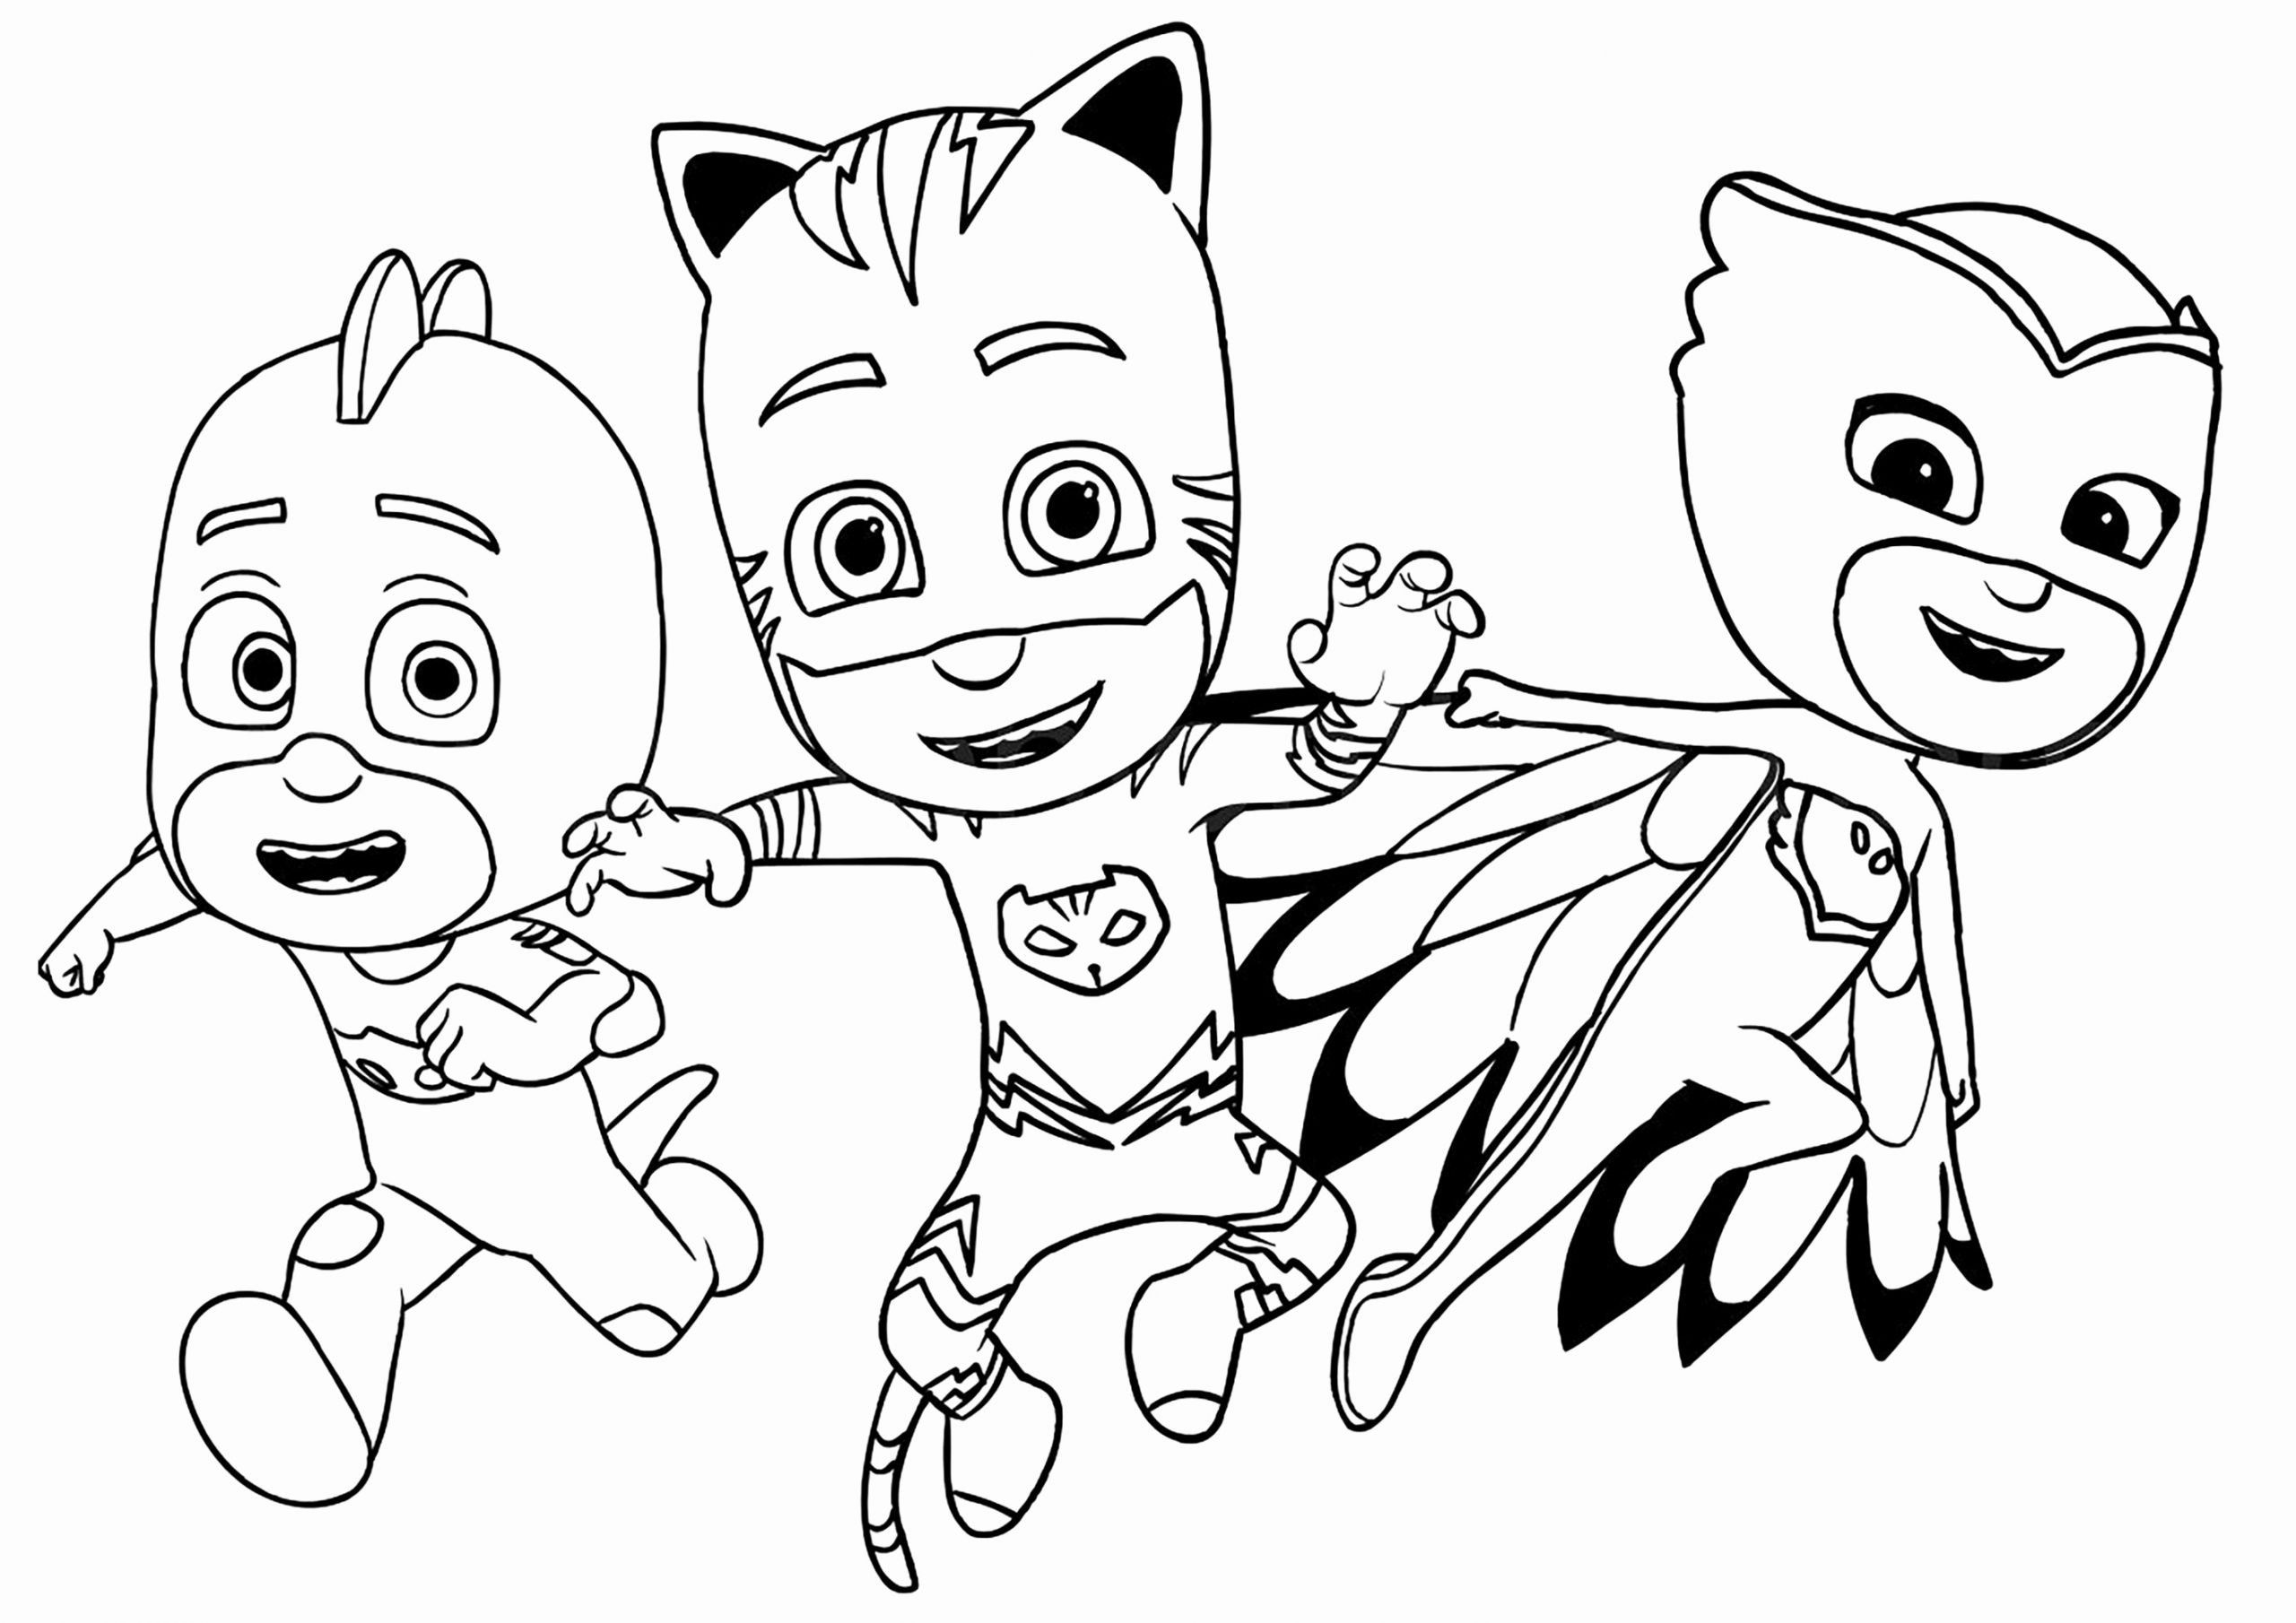 - 21 Pj Masks Coloring Book In 2020 Pj Masks Coloring Pages